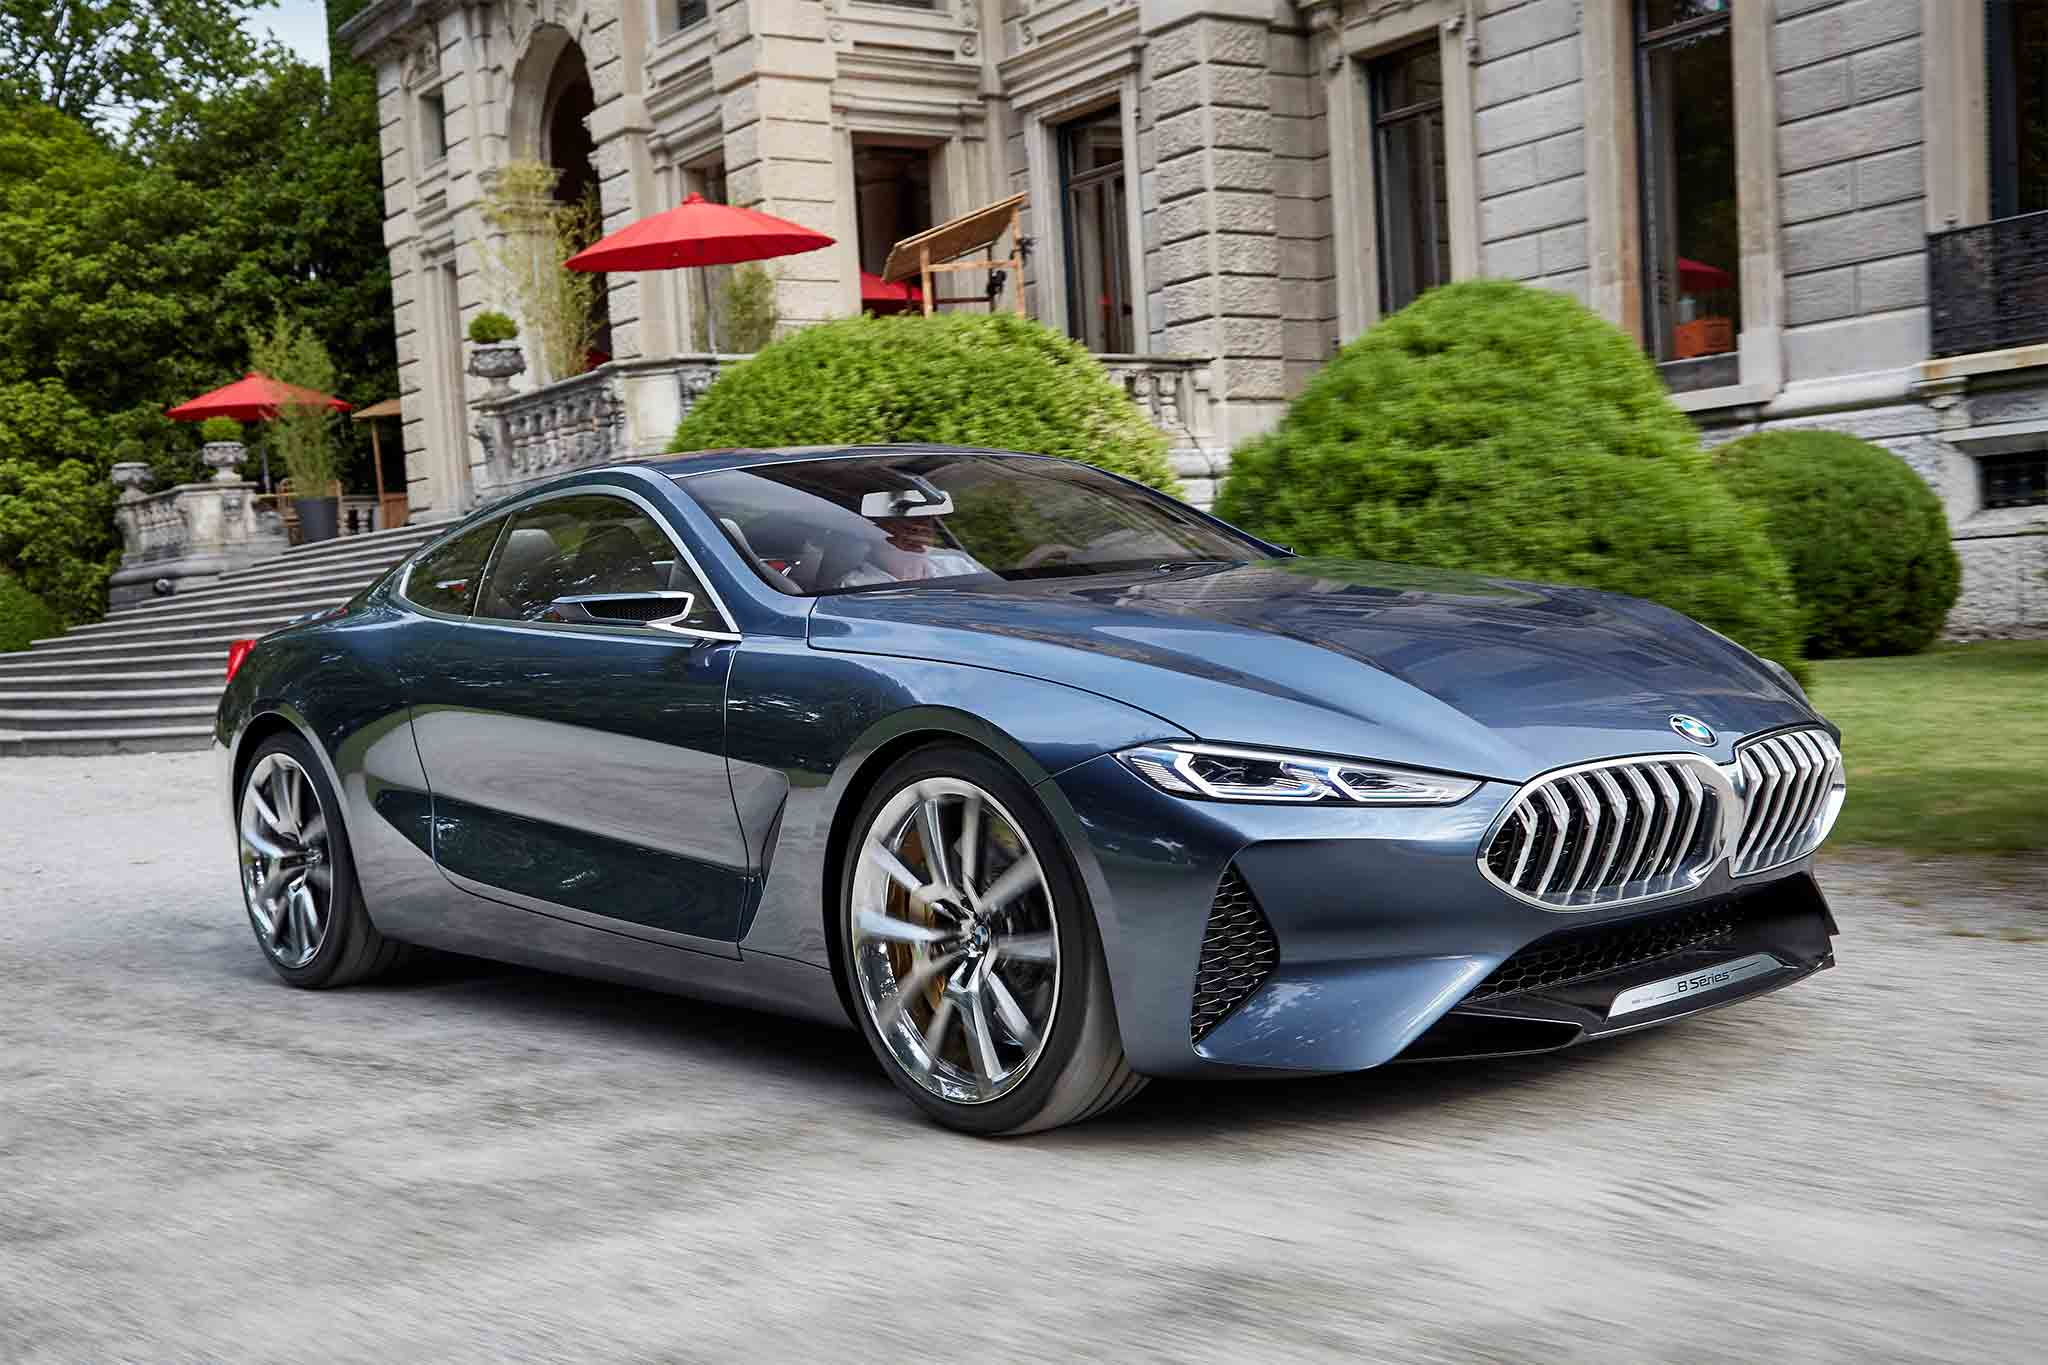 23 New 2019 Bmw 8 Series Gran Coupe Engine by 2019 Bmw 8 Series Gran Coupe